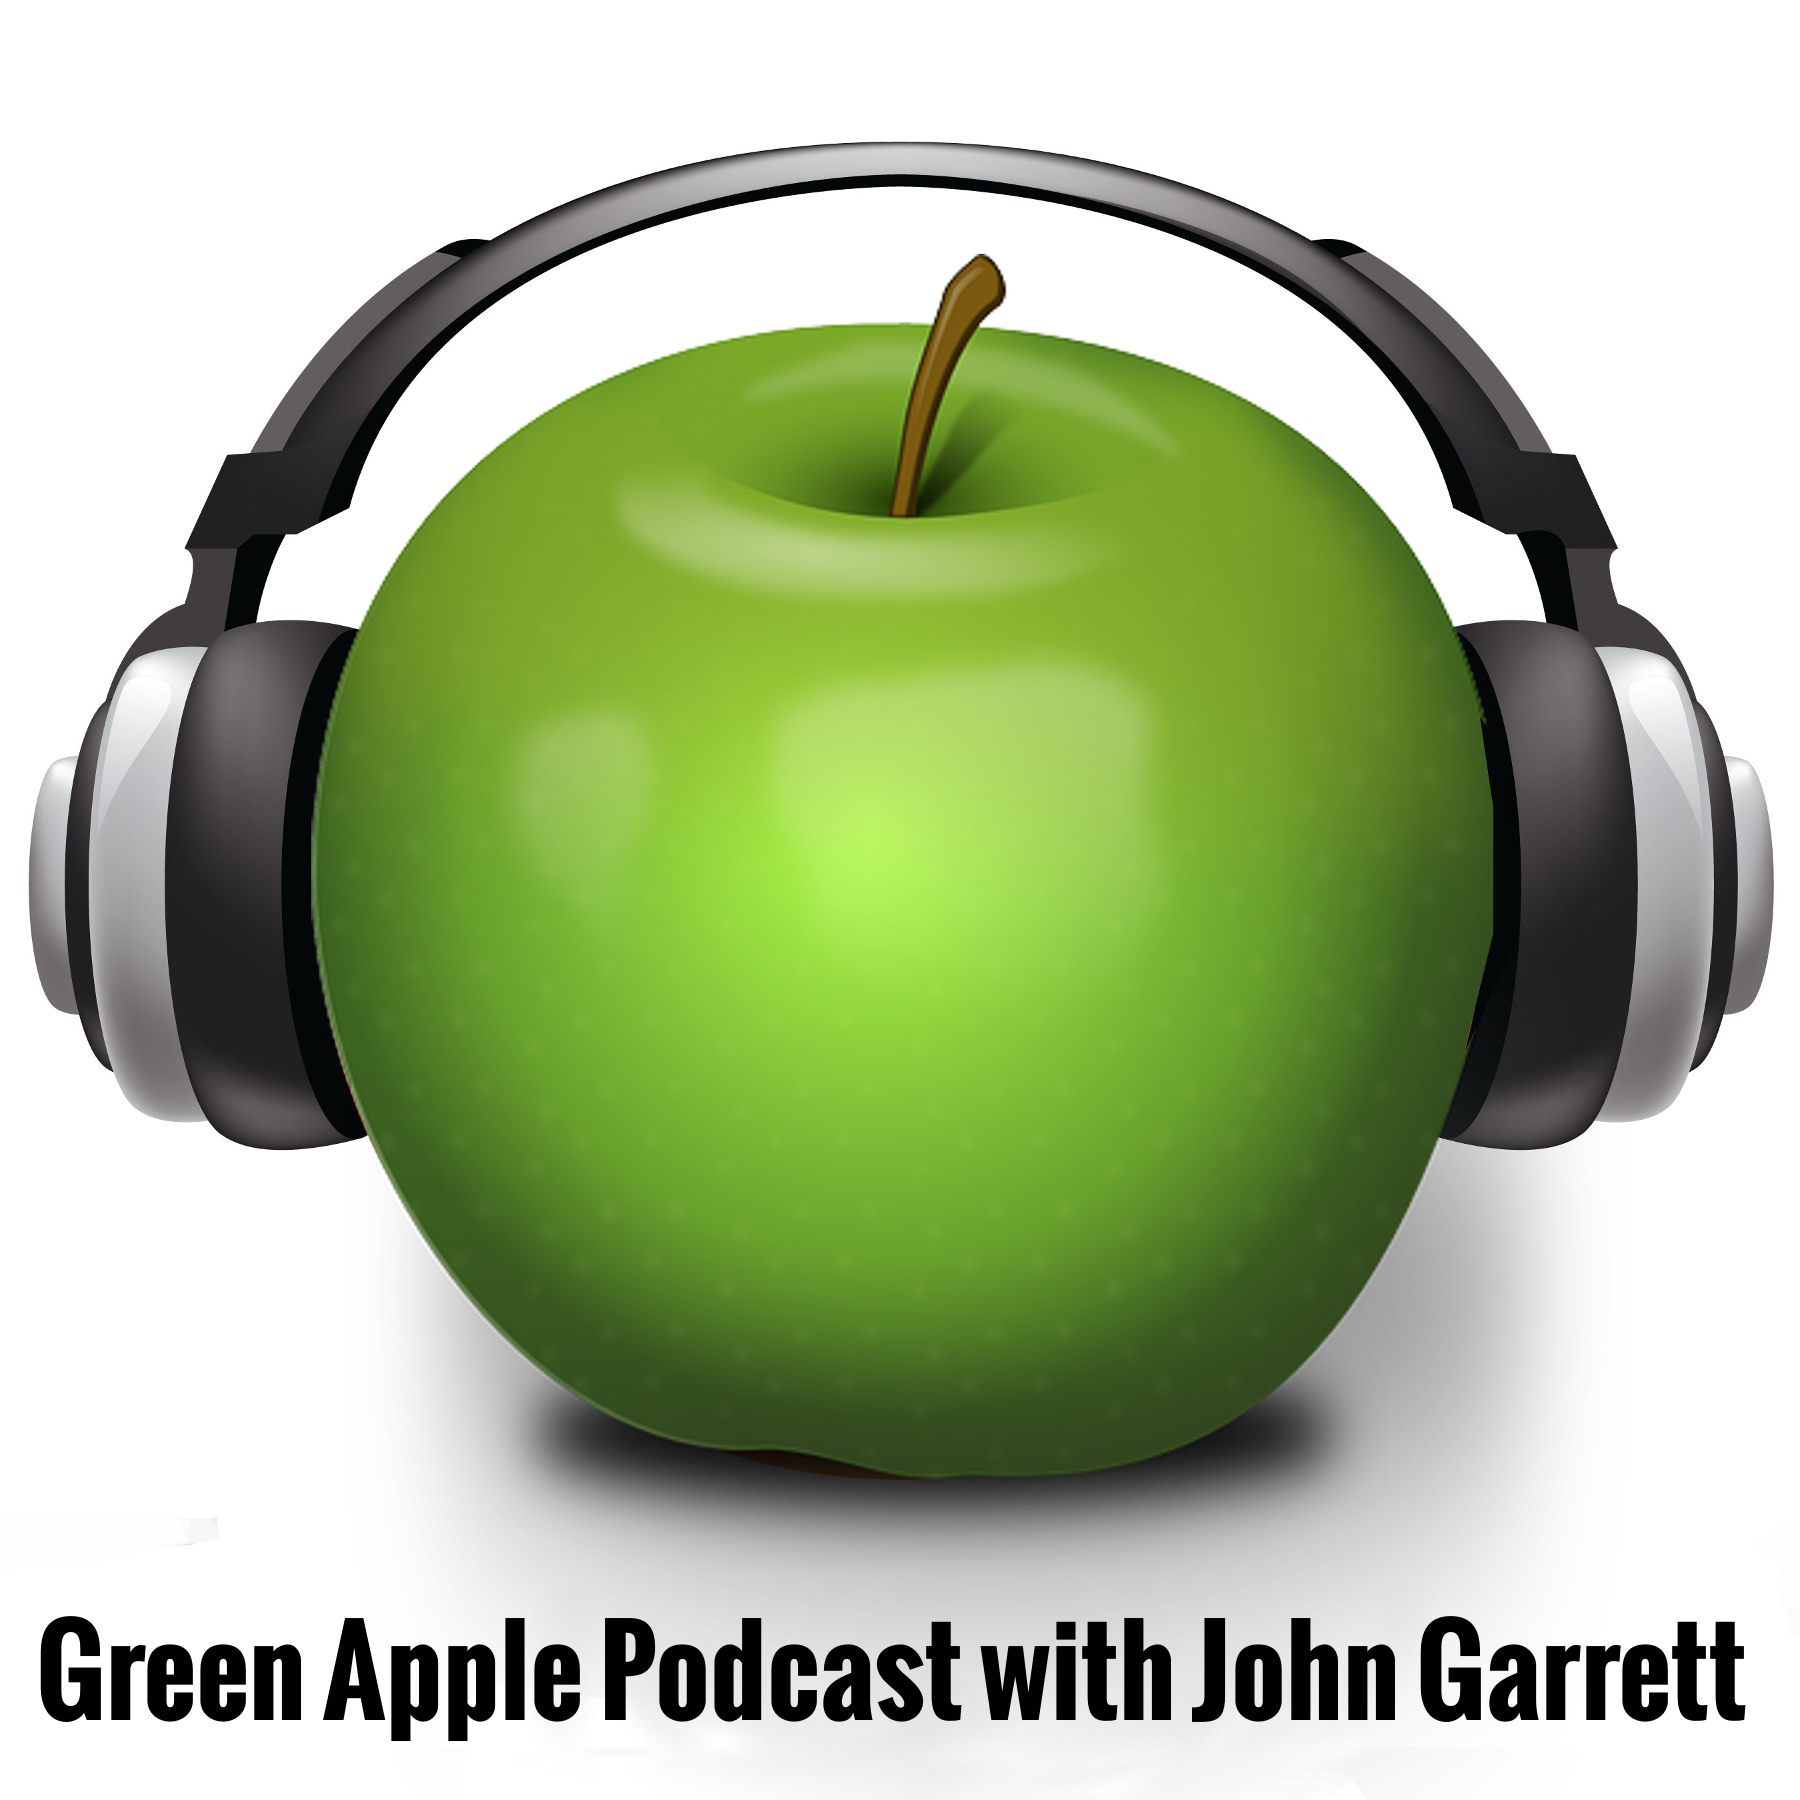 The Green Apple Podcast: shattering the professional stereotype